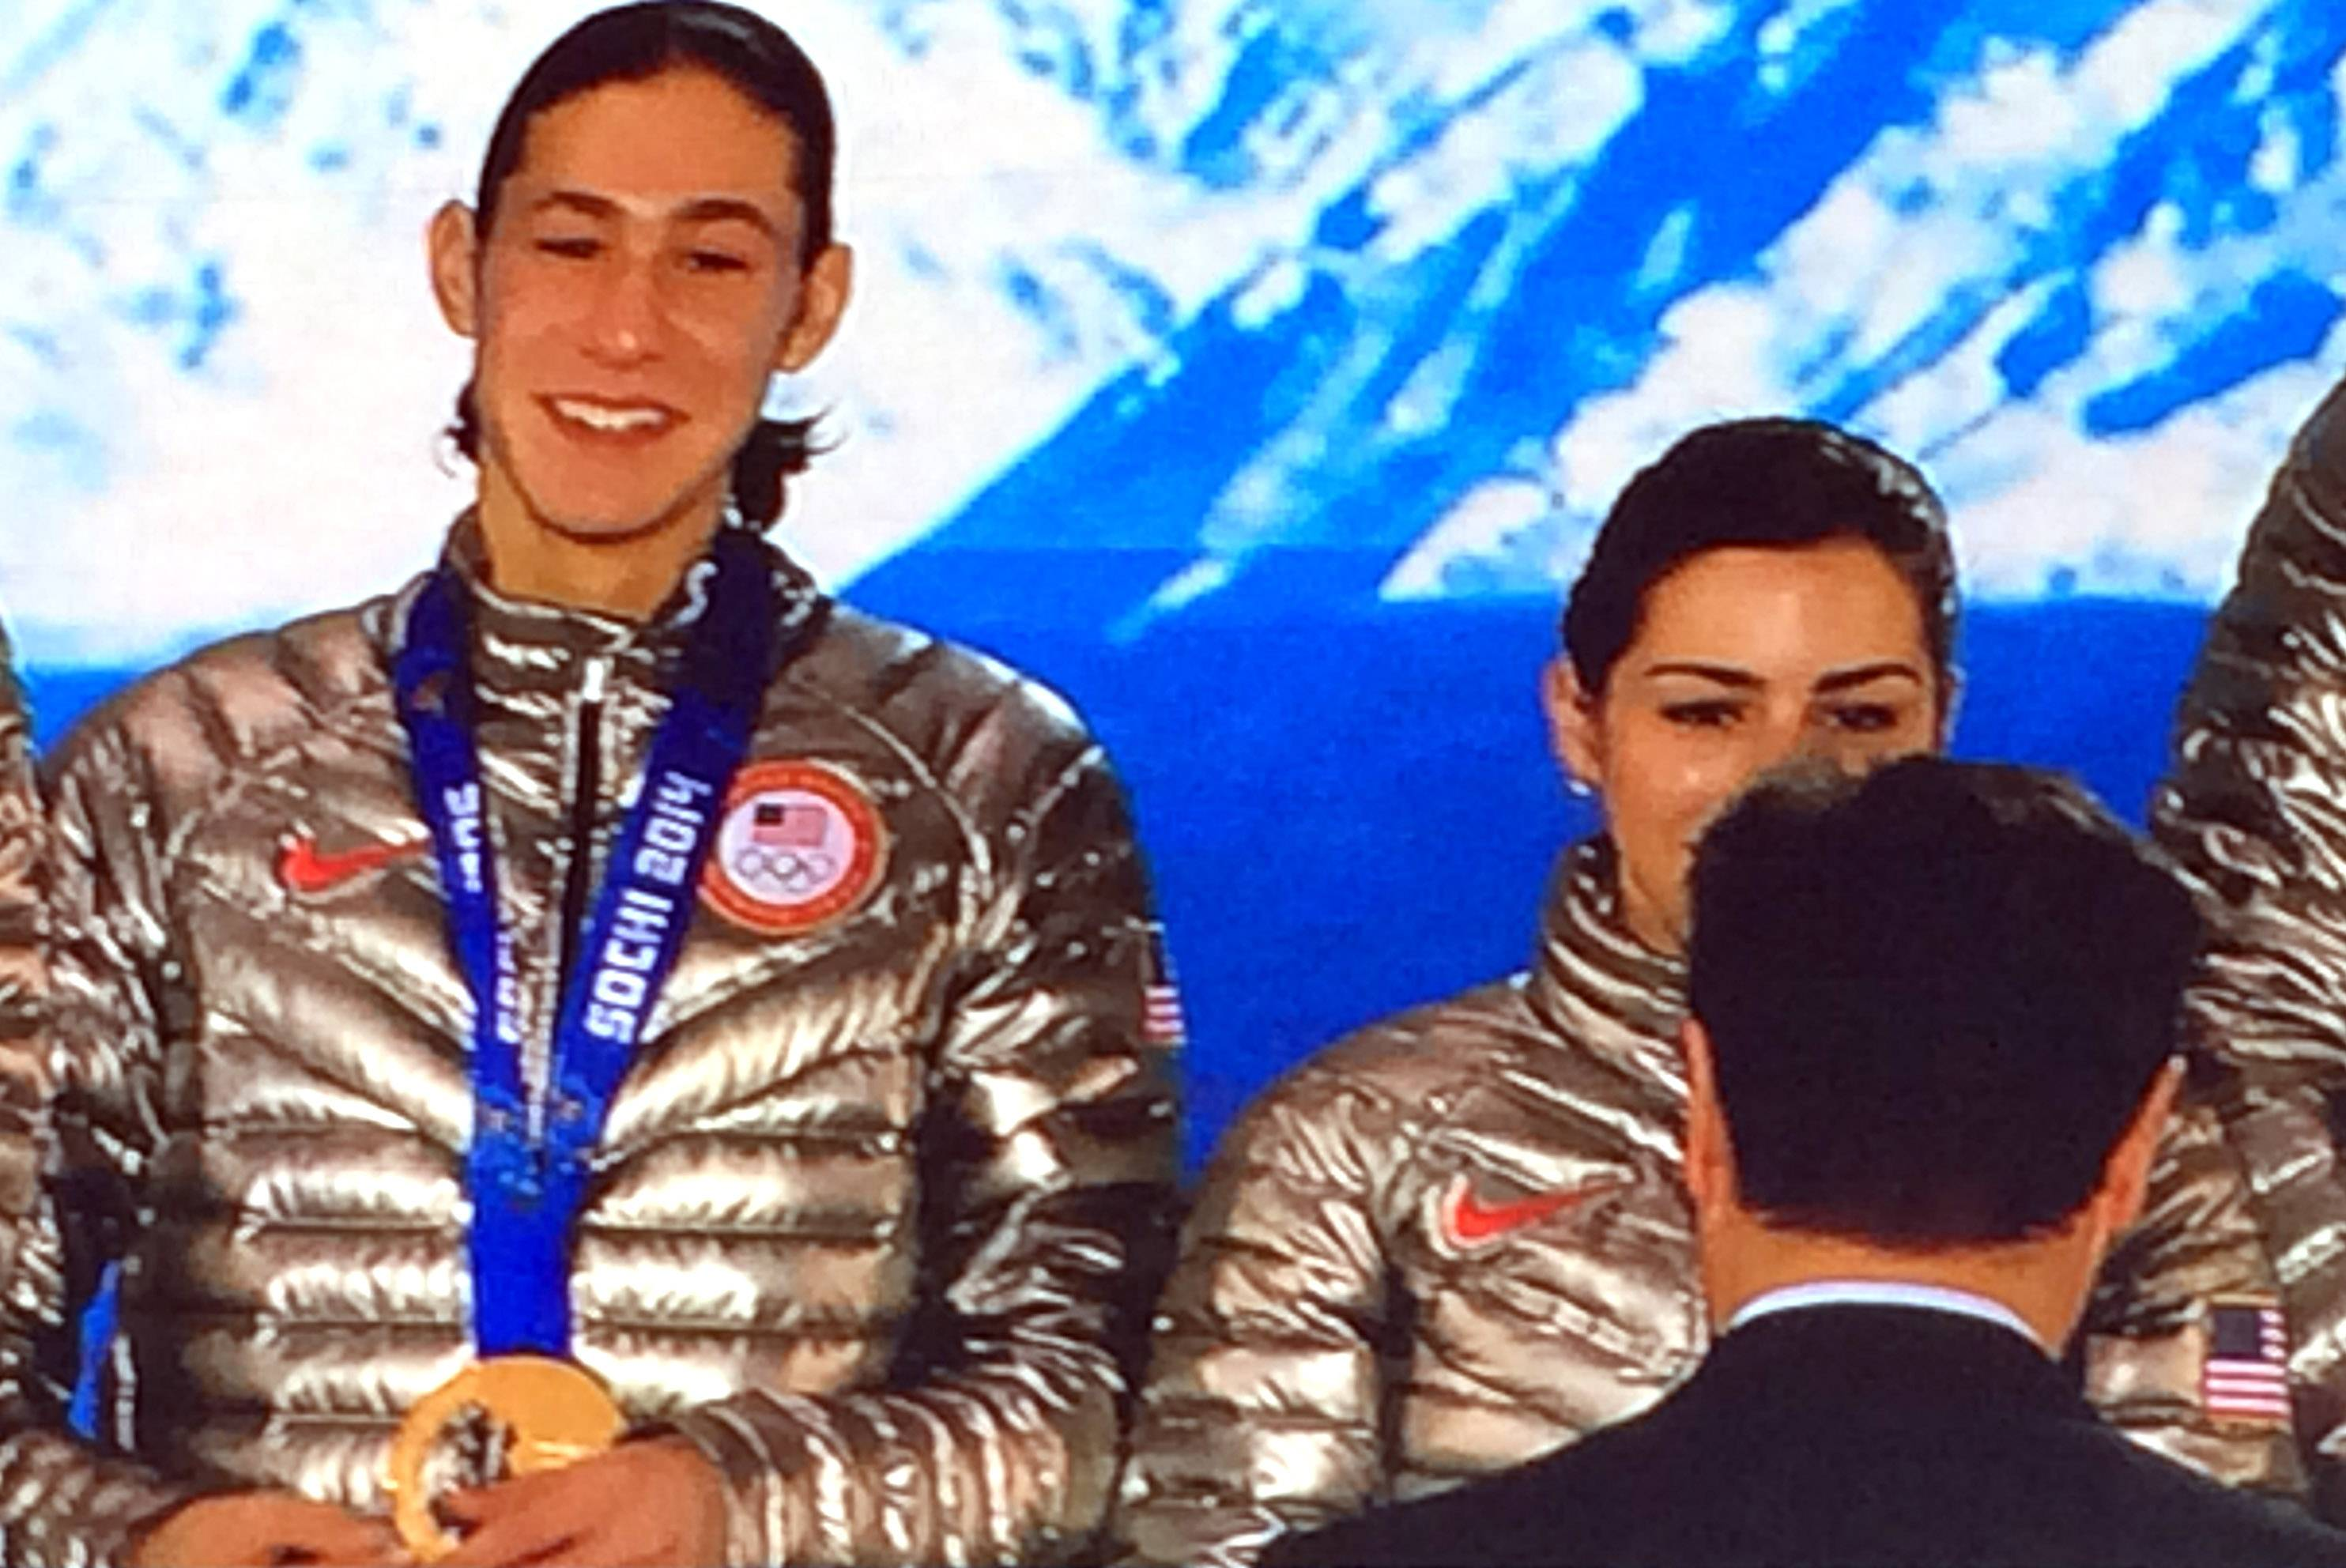 A photo of a video monitor shows Highland Park skater Jason Brown receiving his Olympic medal Monday.